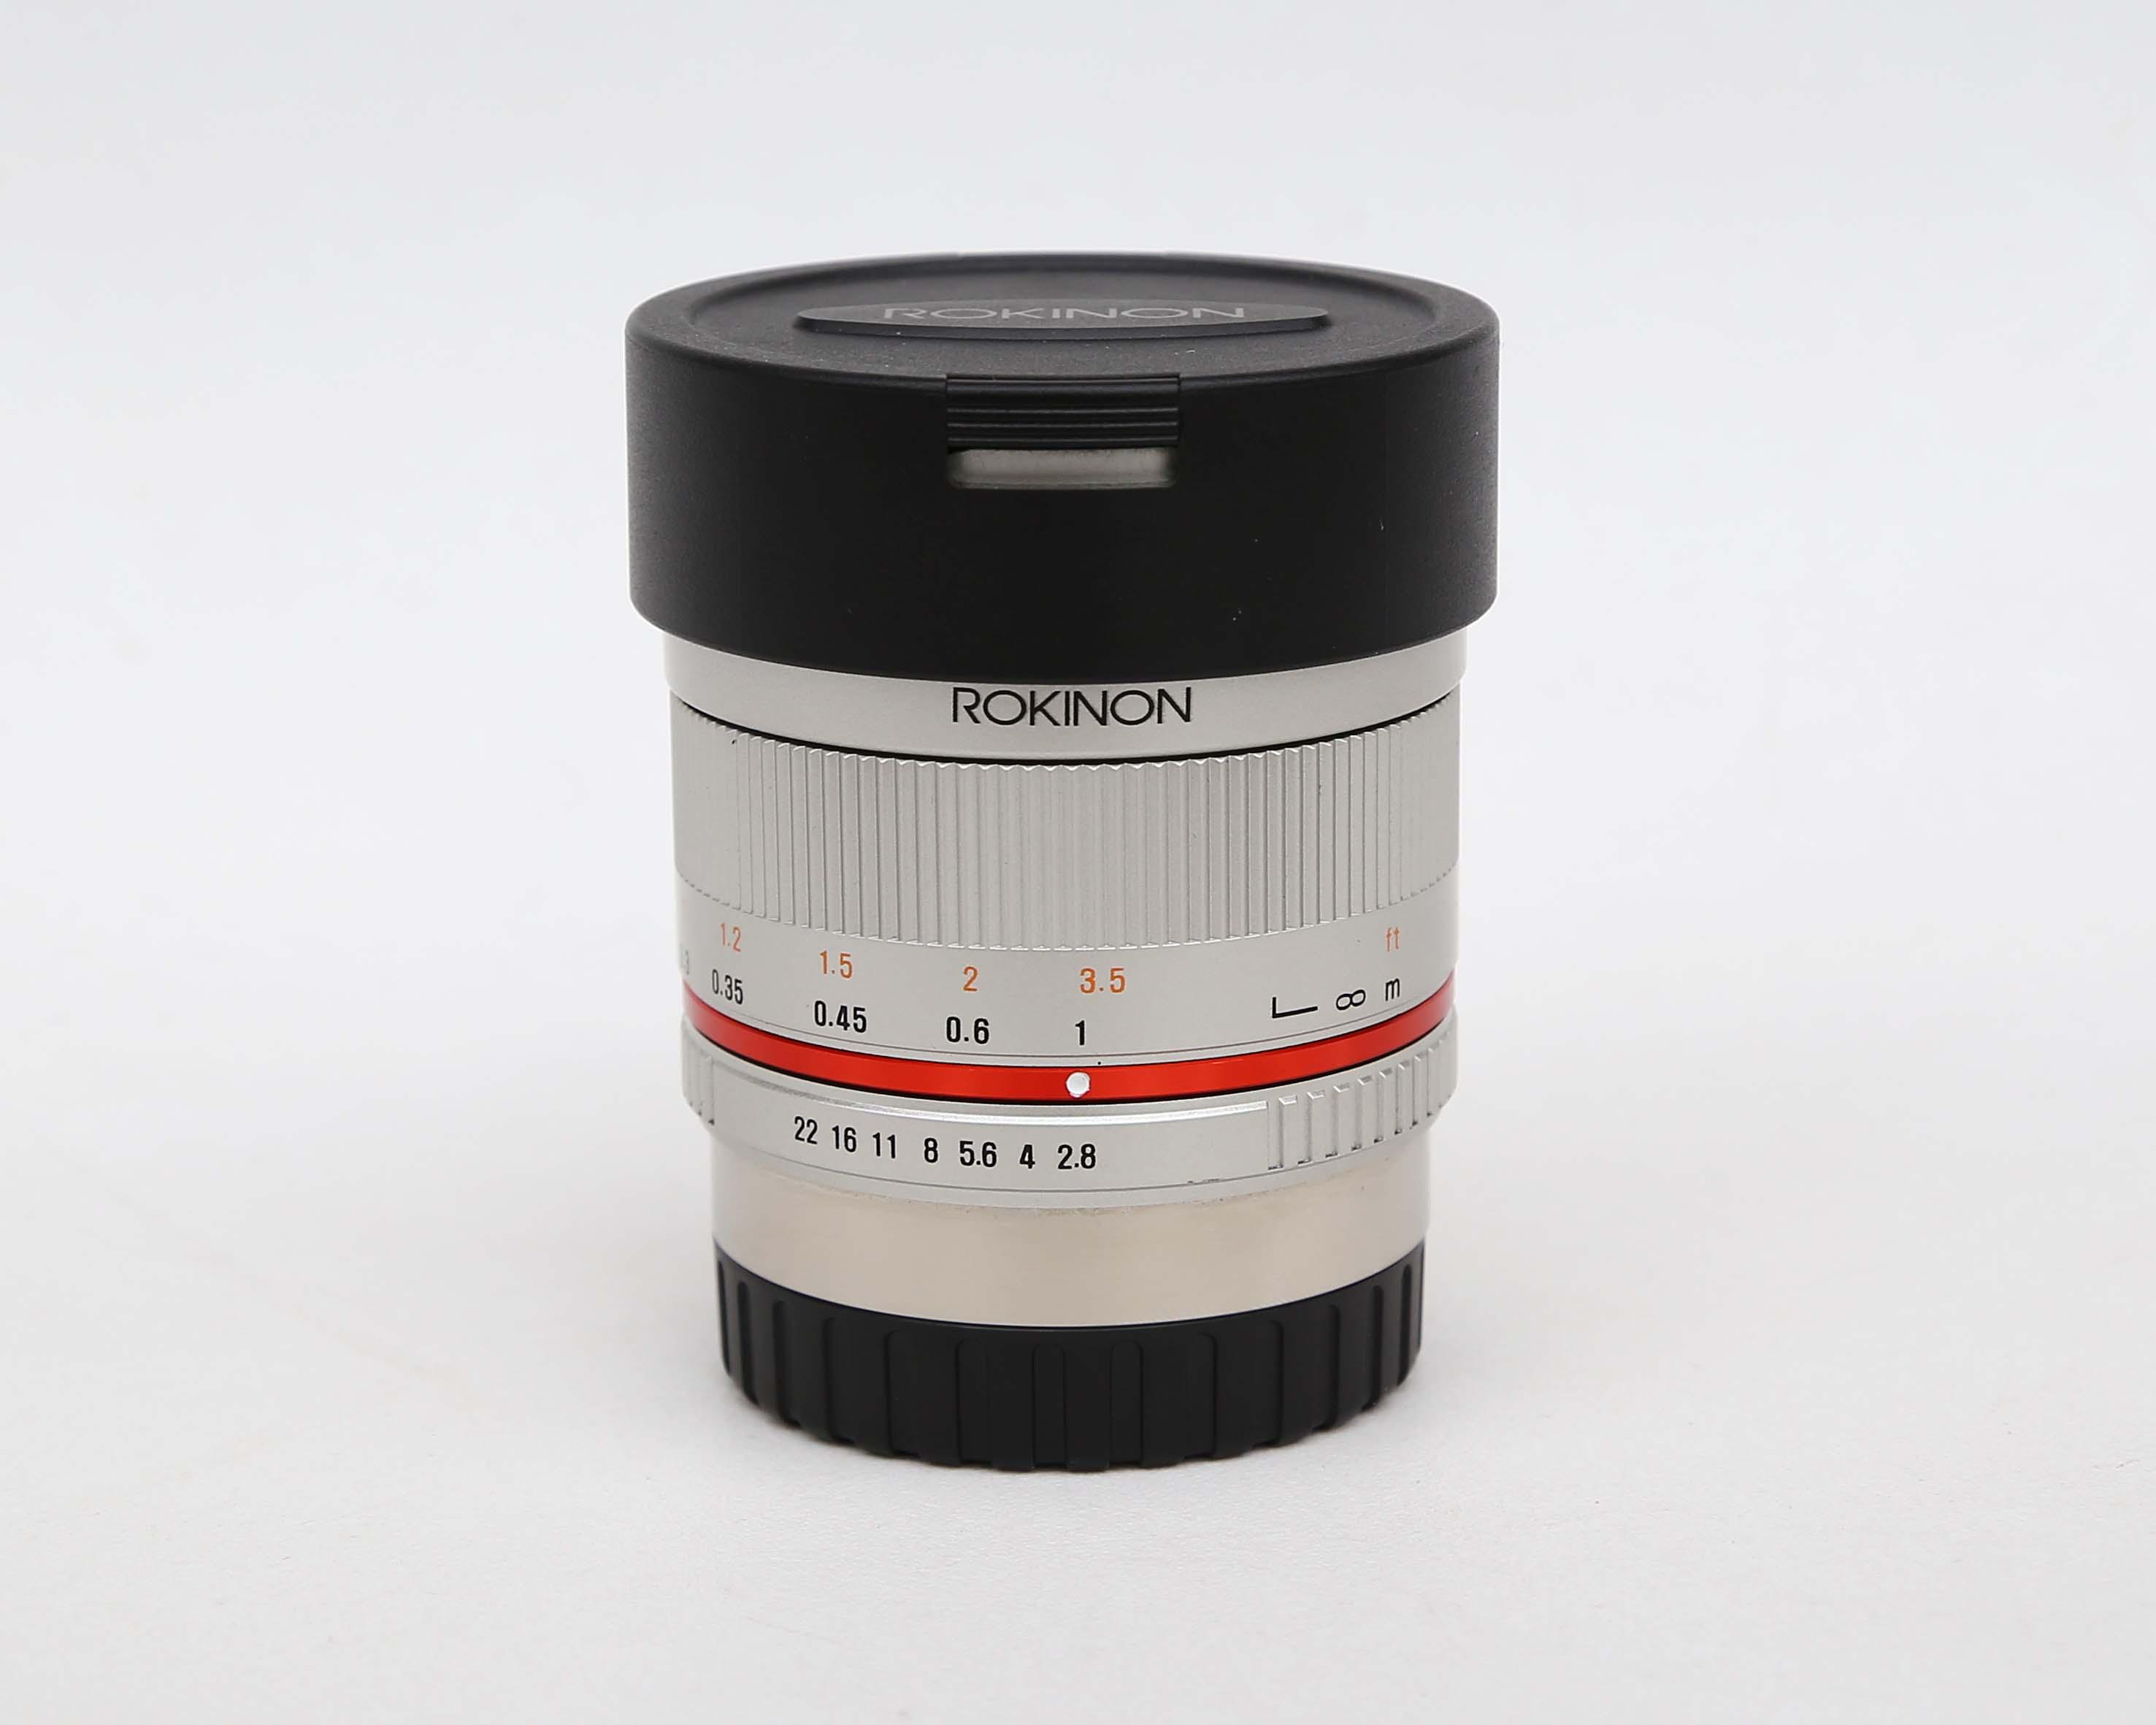 Rokinon 8mm f/2.8 UMC Fisheye II Lens for Fujifilm X Mount